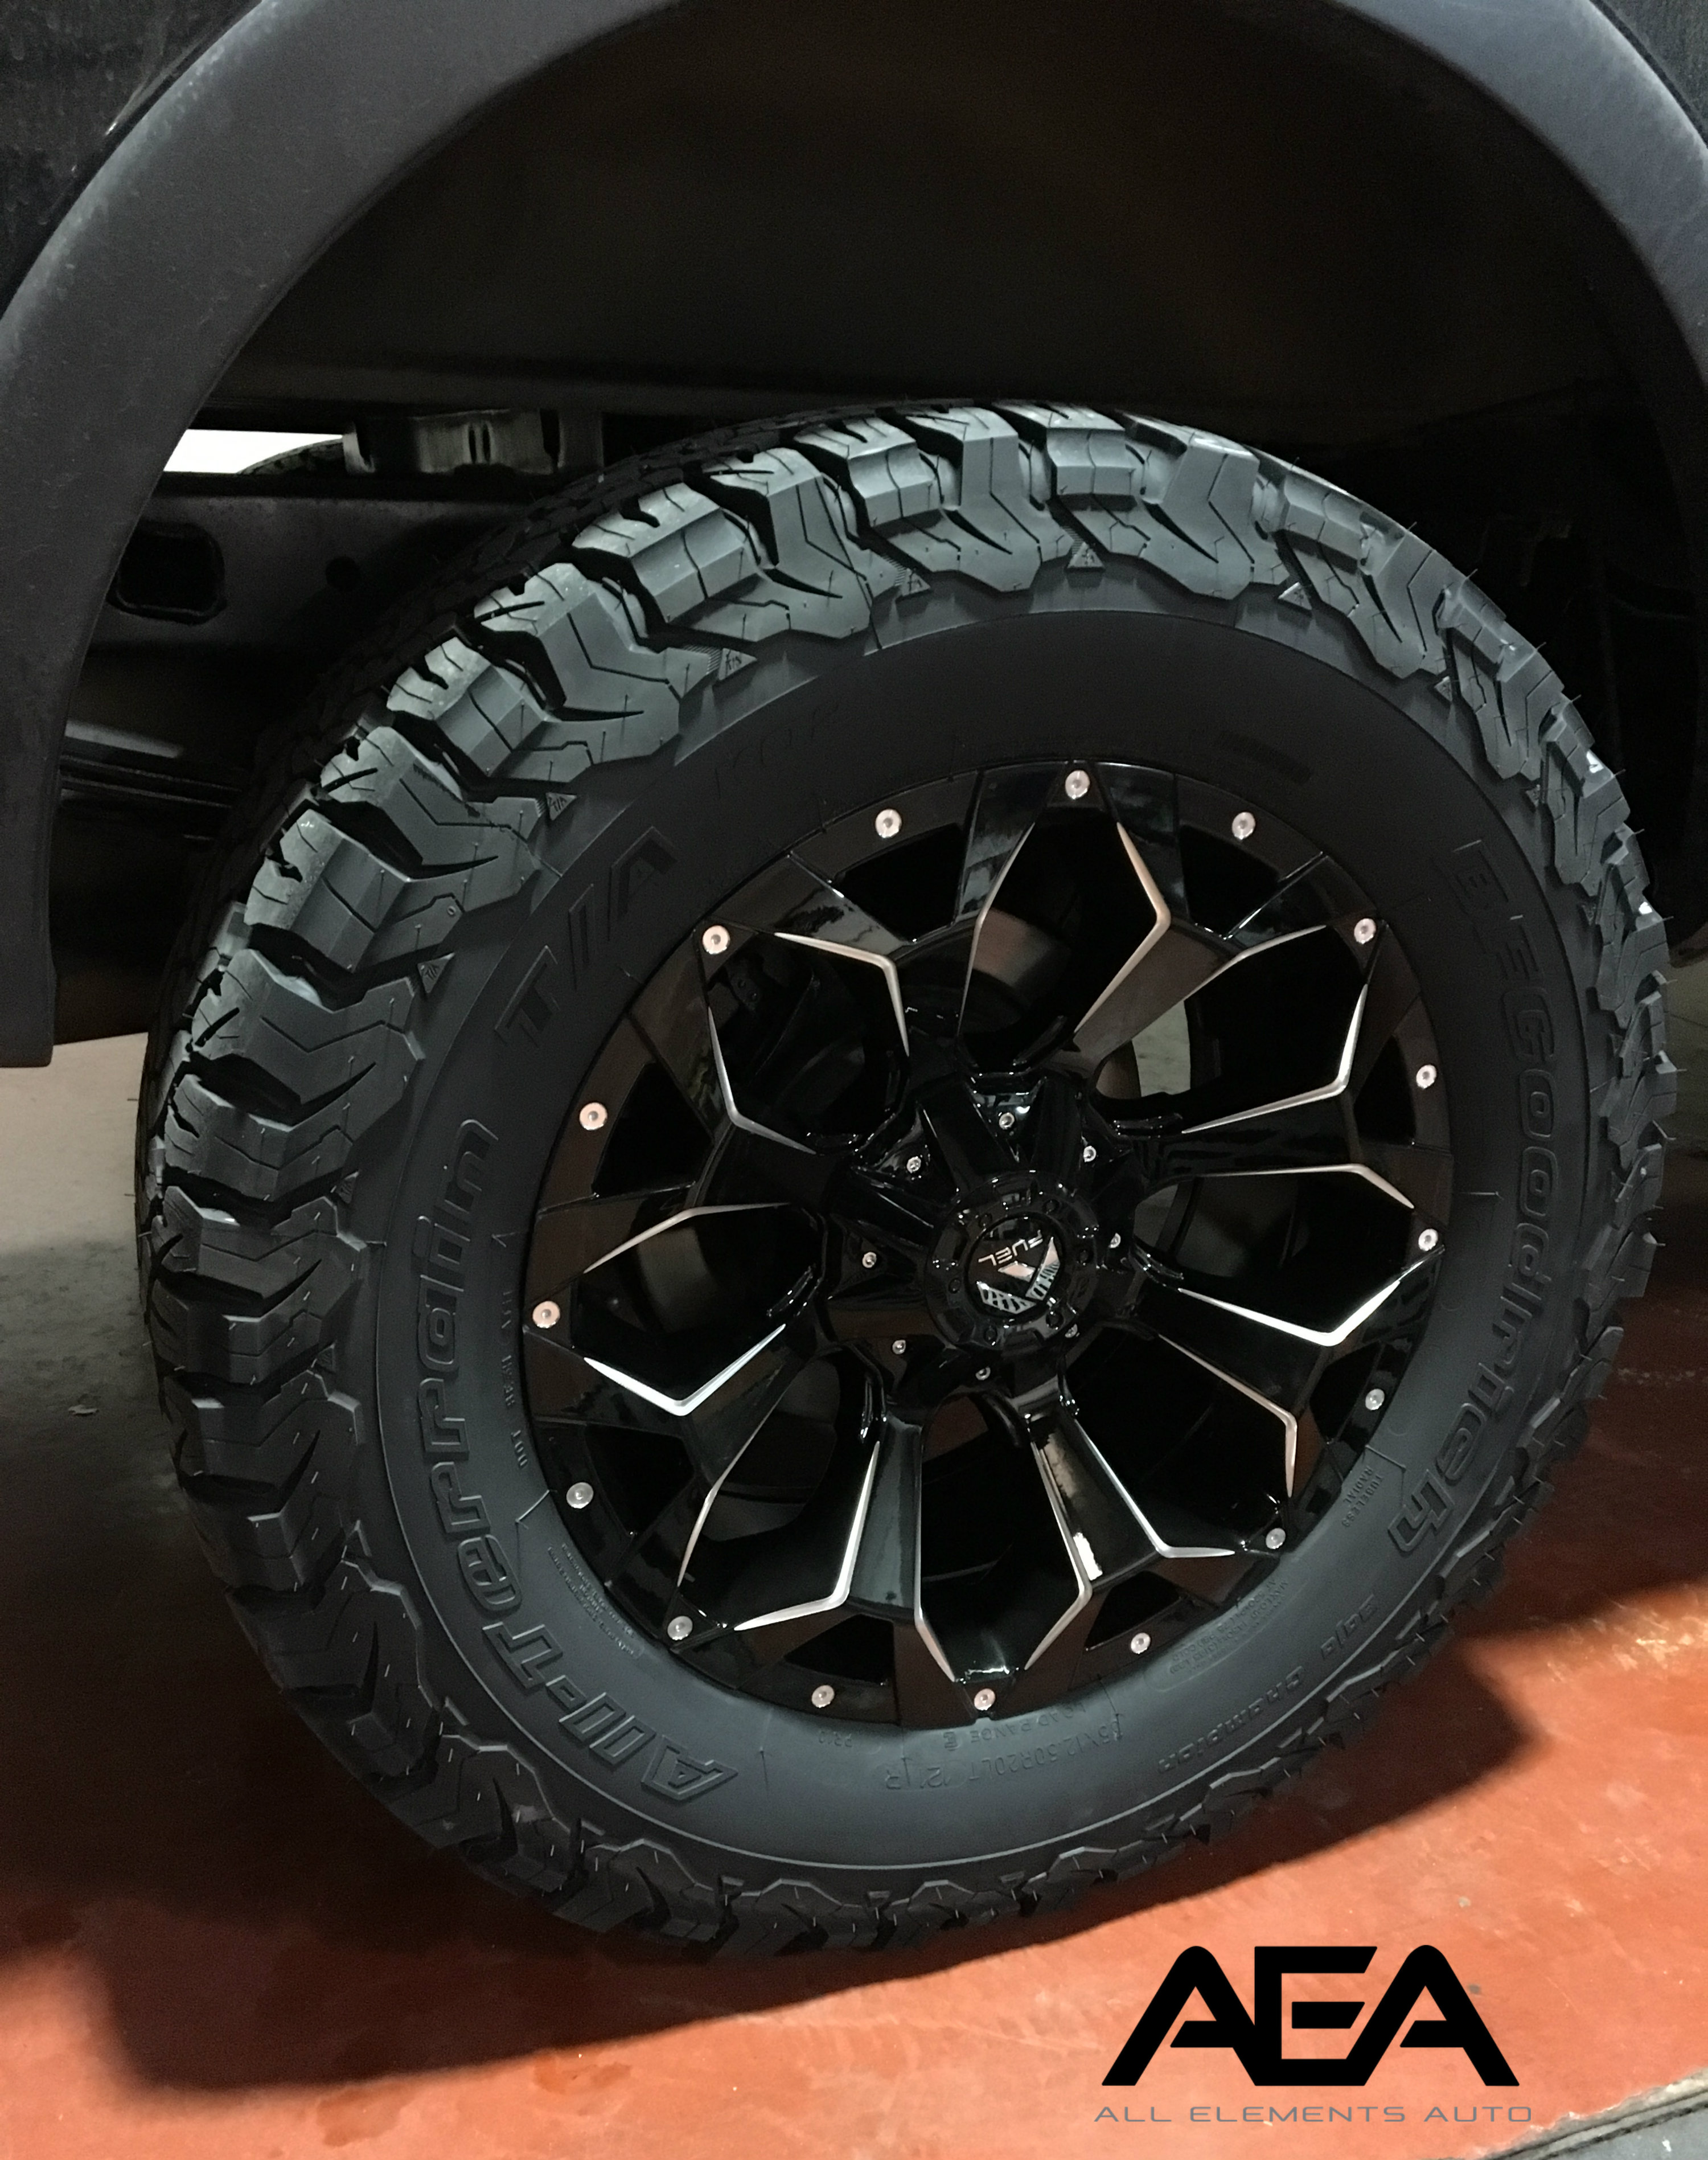 20 inch Fuel Assault Wheel on a 35 inch BFG KO2 Tire